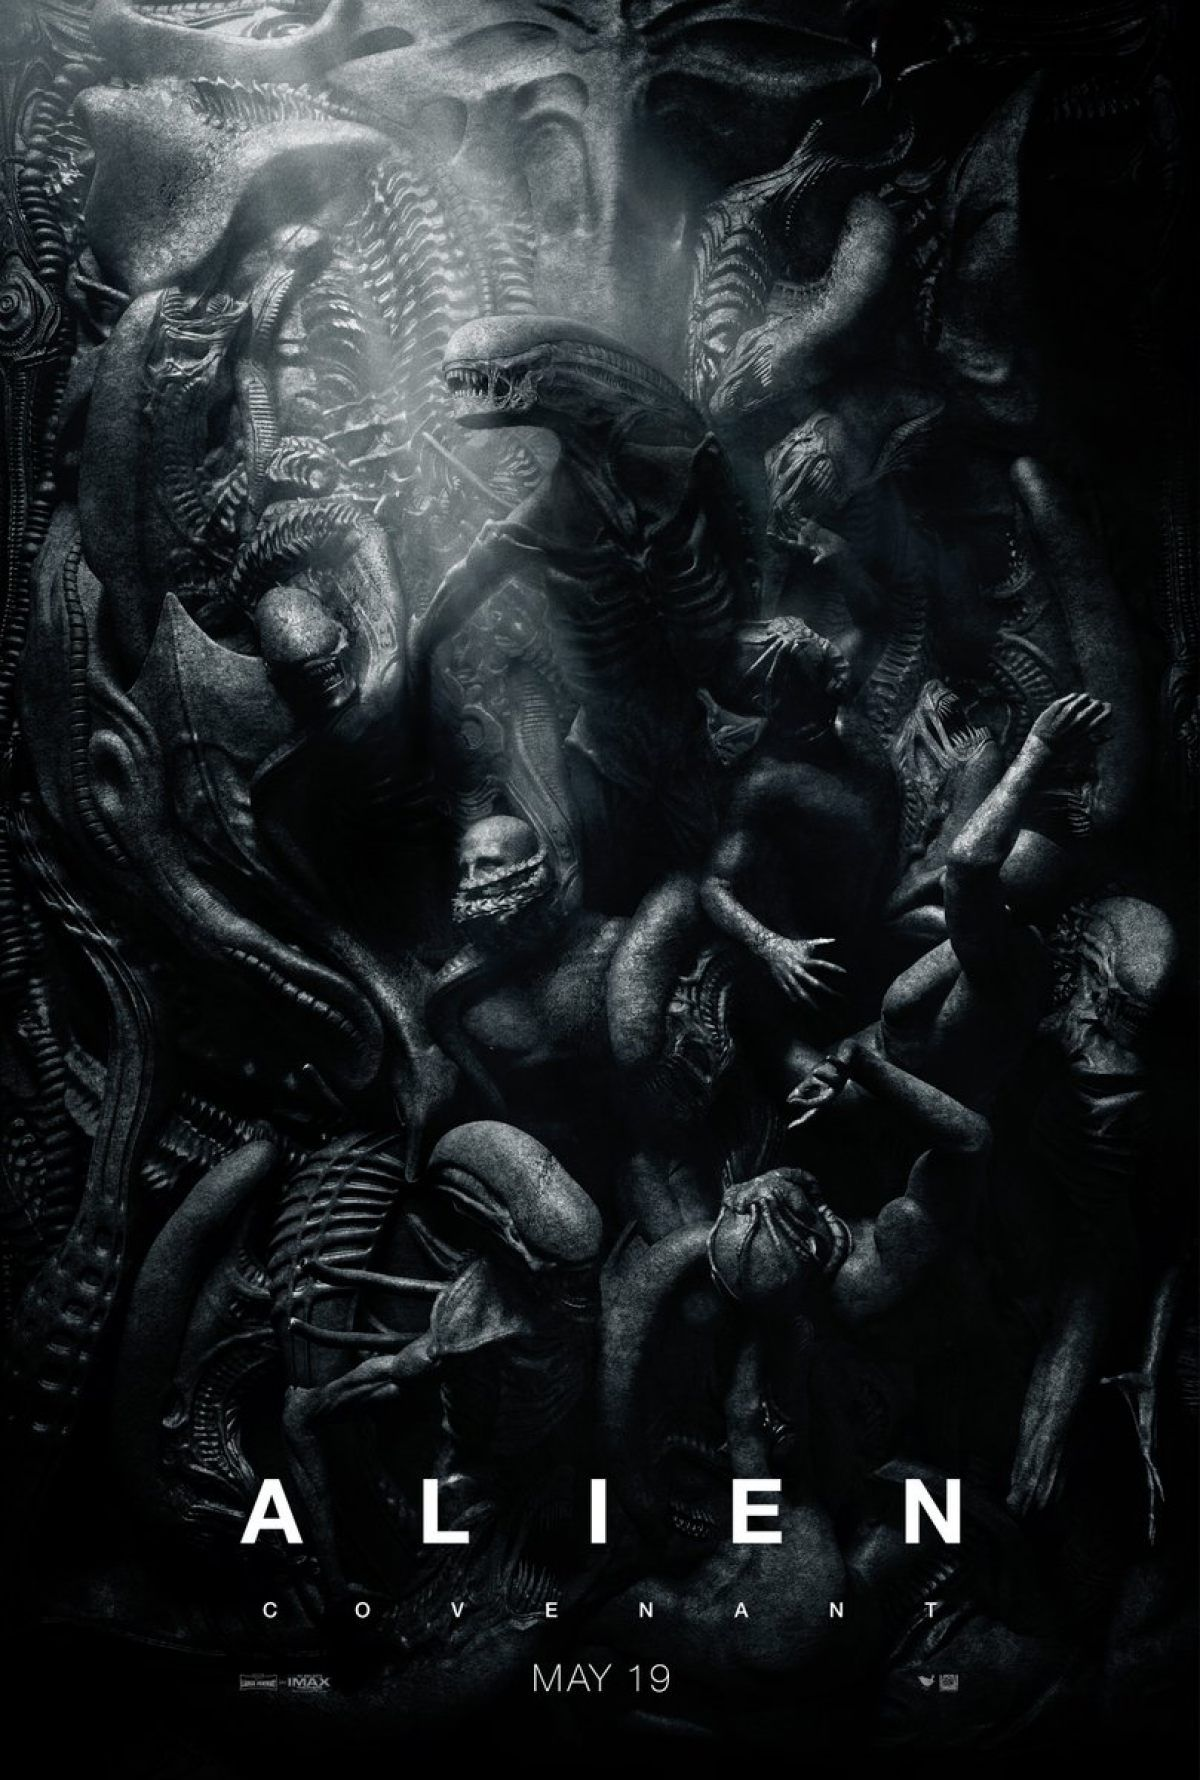 We Cannot Stop Looking At This Alien Covenant Poster Peliculas